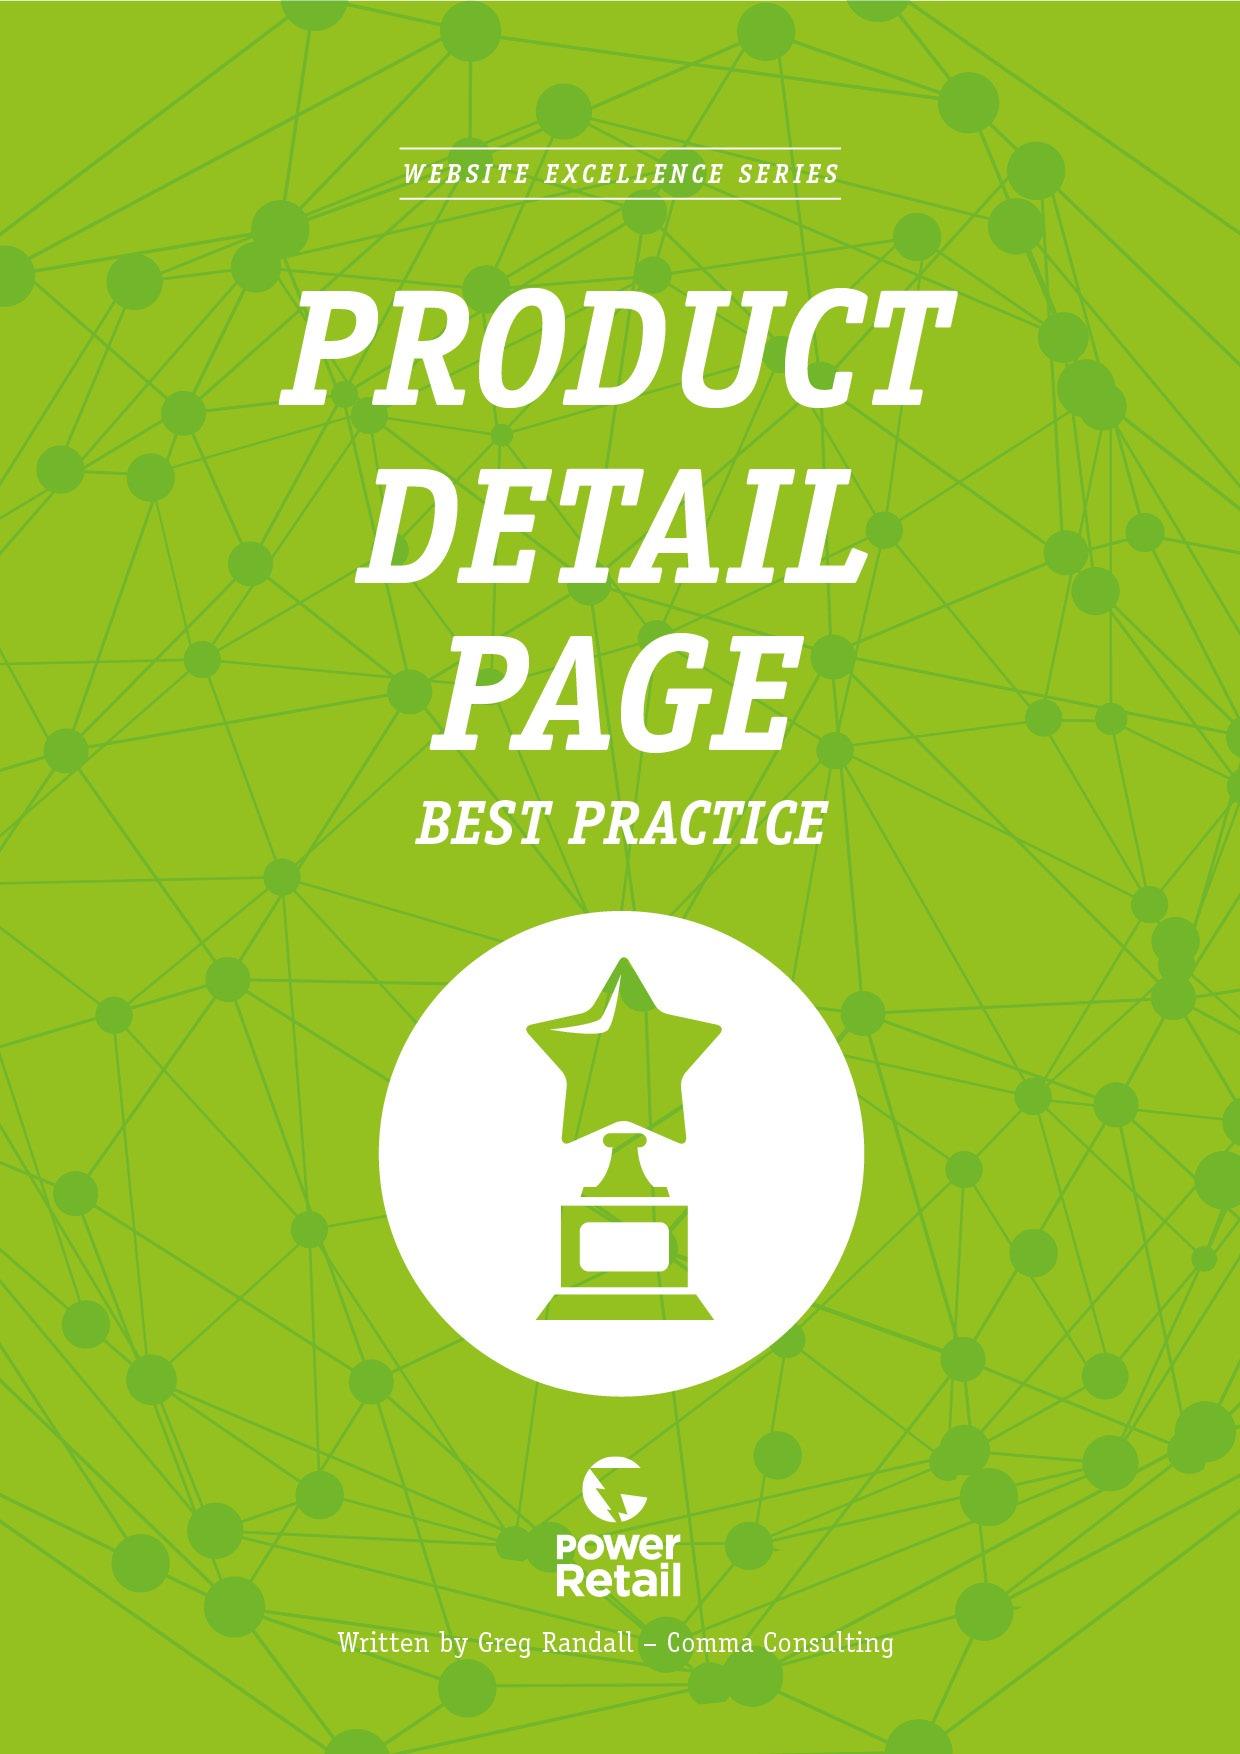 Product Detail Page Best Practice